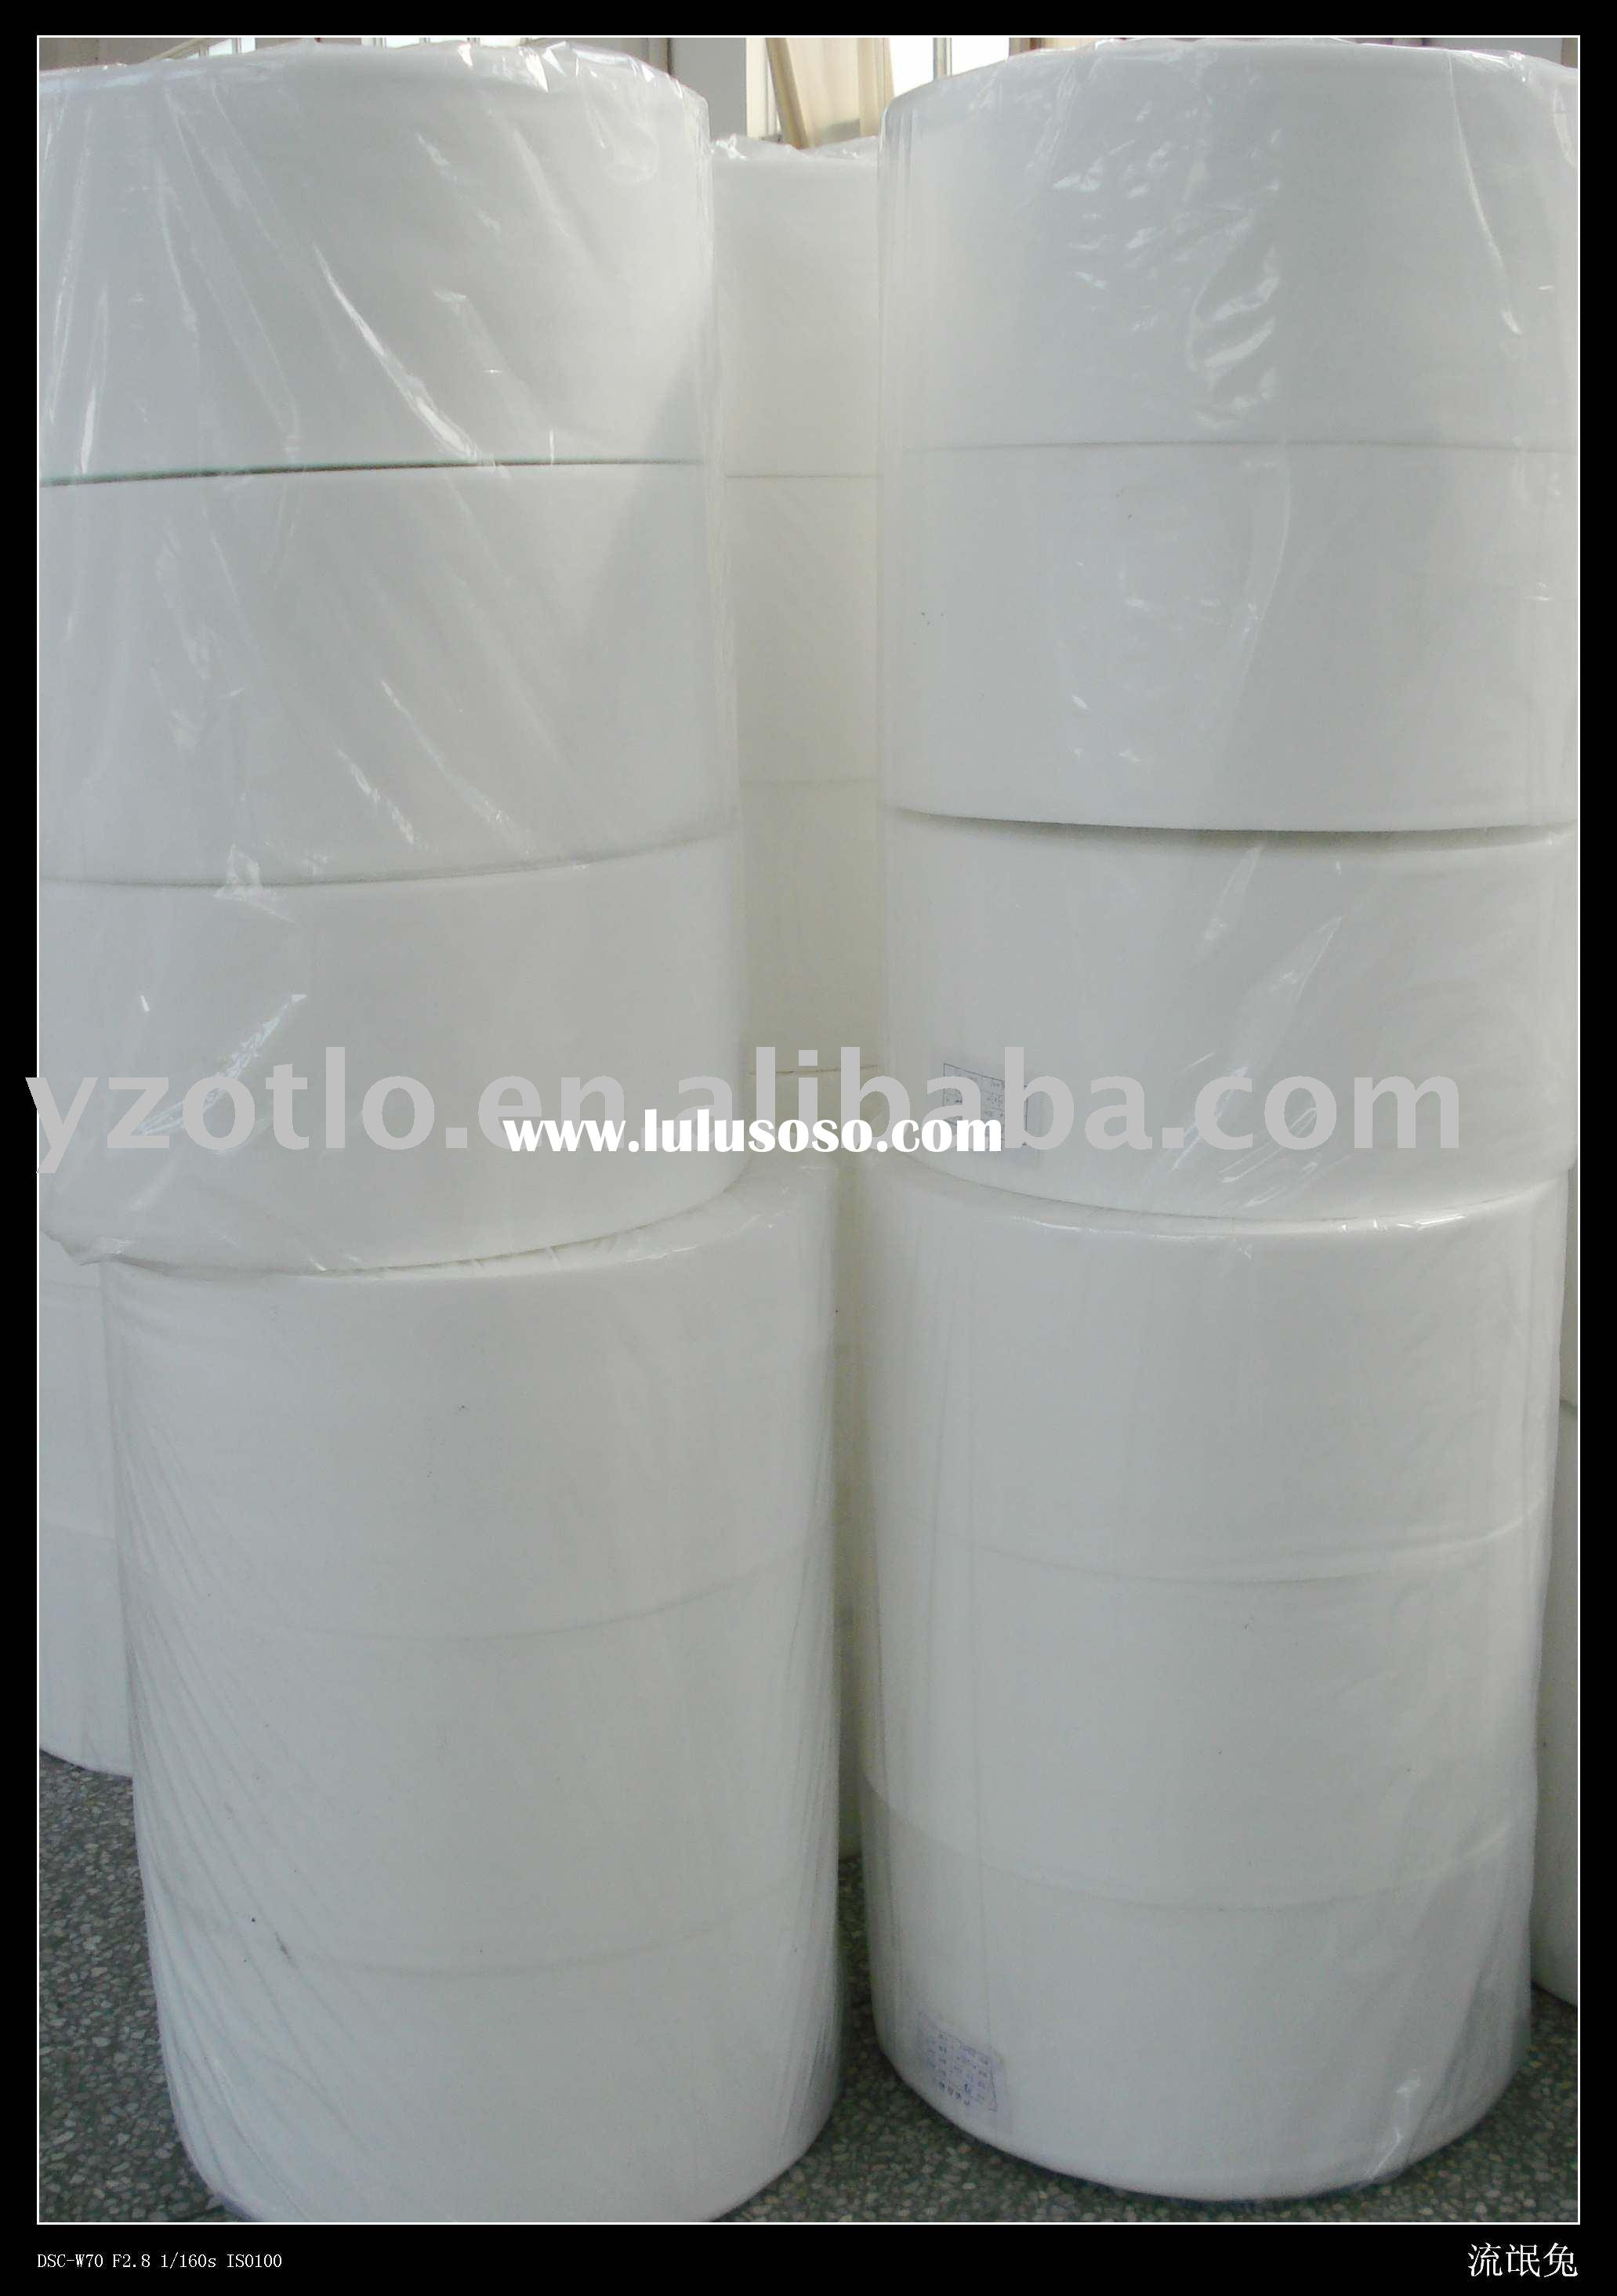 White High Quality PP Nonwoven Fabric